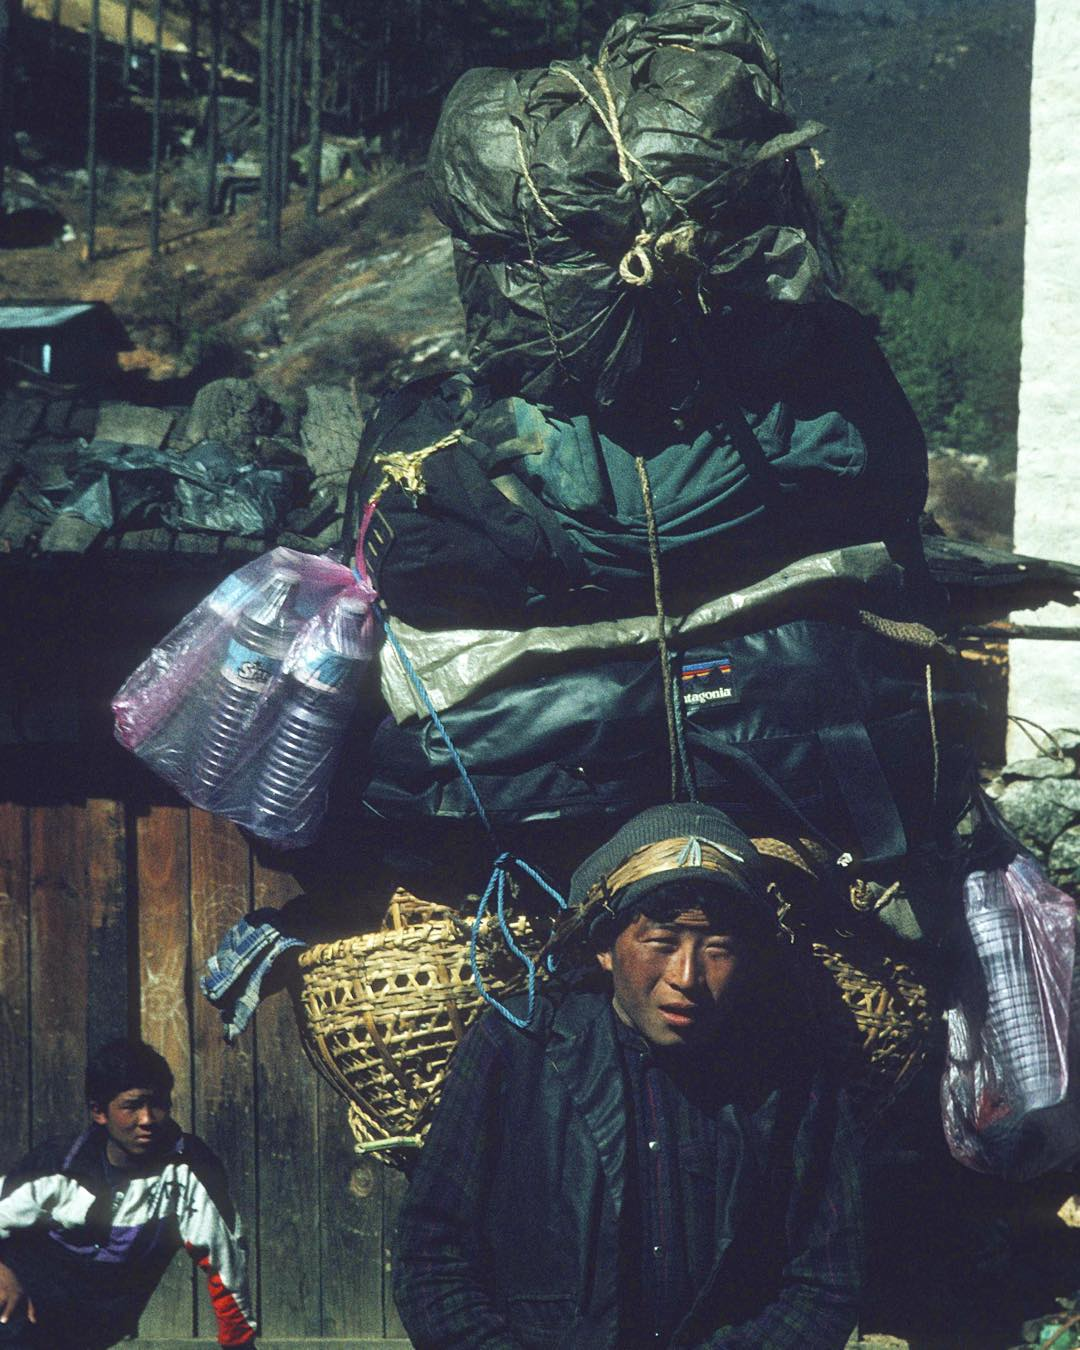 Thank goodness I got a Sherpa for all my #BlackFriday shopping!  Kidding! This was one of our Sherpas during our Mt Everest trek when I was 7 yrs old. To be honest I'm not a fan of the holiday buying frenzy - Sherpas in Nepal come from simple lives and...